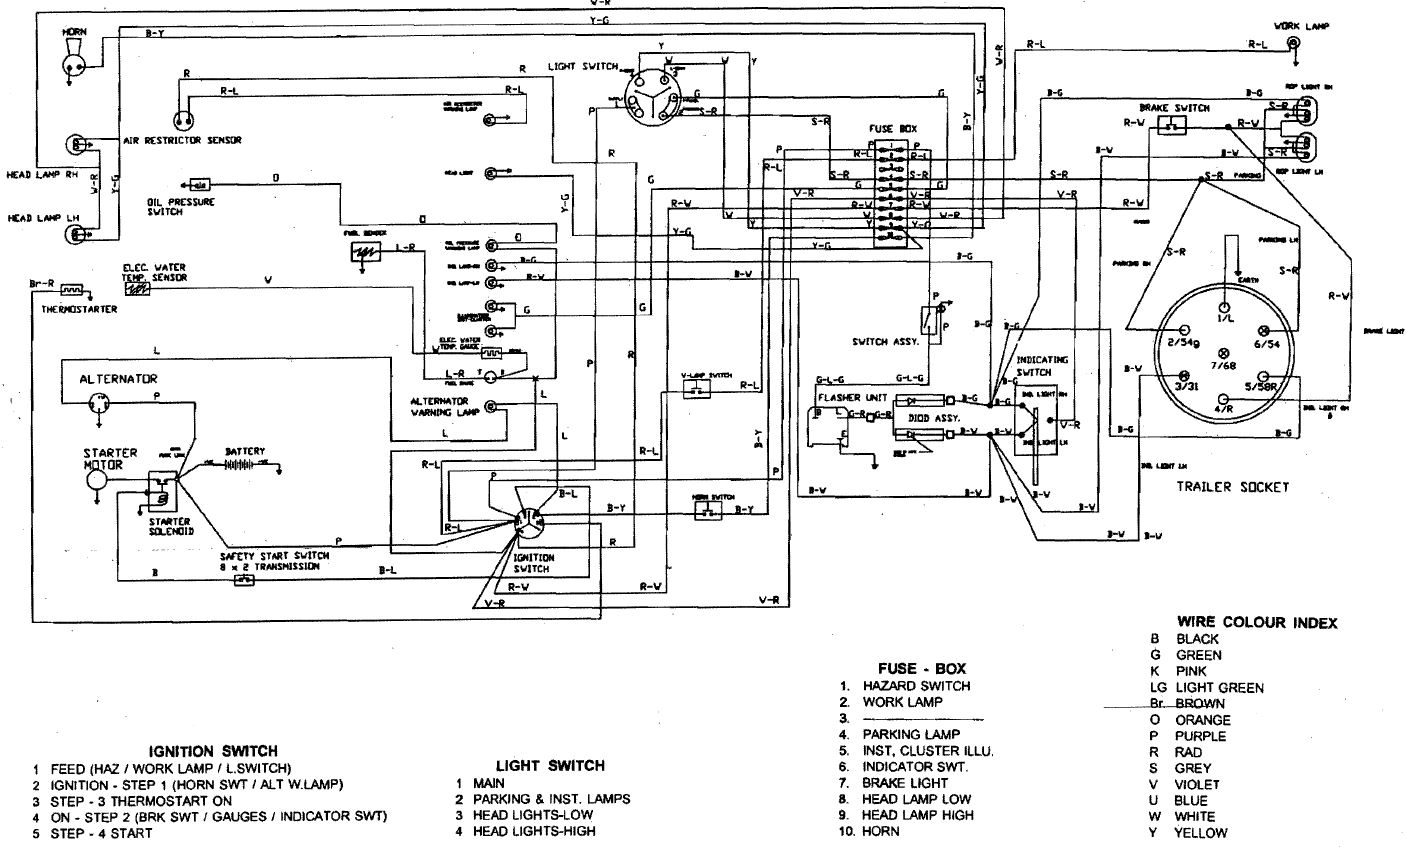 wrg 4699] case excavator wiring diagramsignition switch wiring diagram